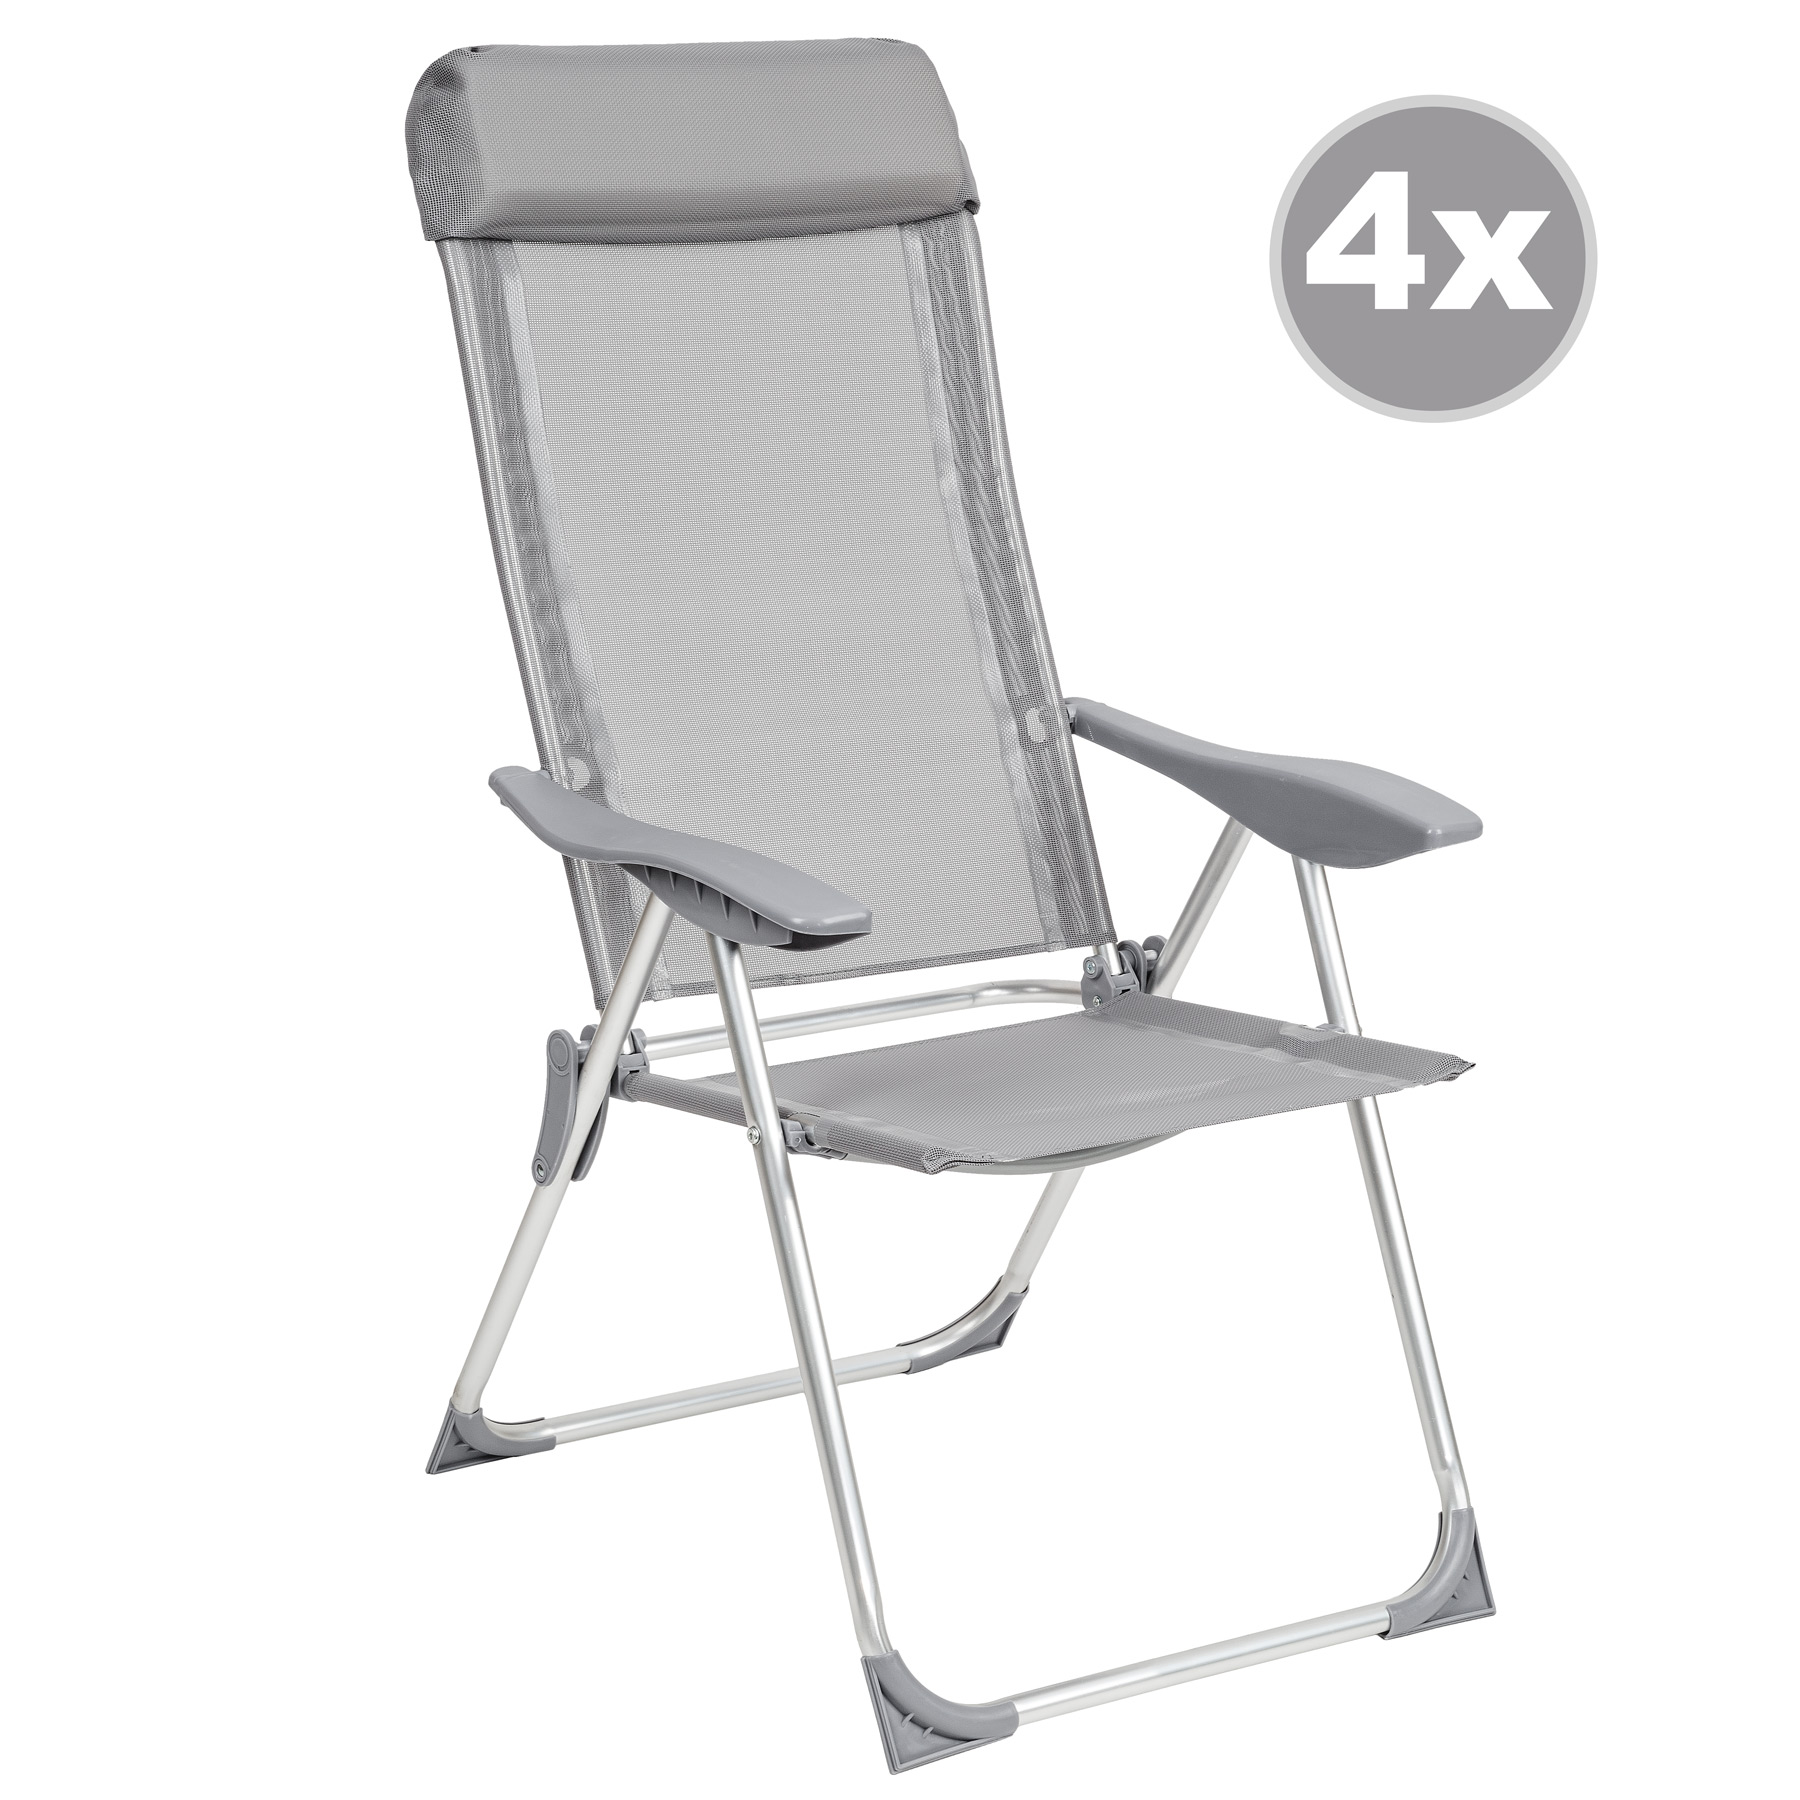 lot de 4 chaises de jardin aluminium pliante camping. Black Bedroom Furniture Sets. Home Design Ideas